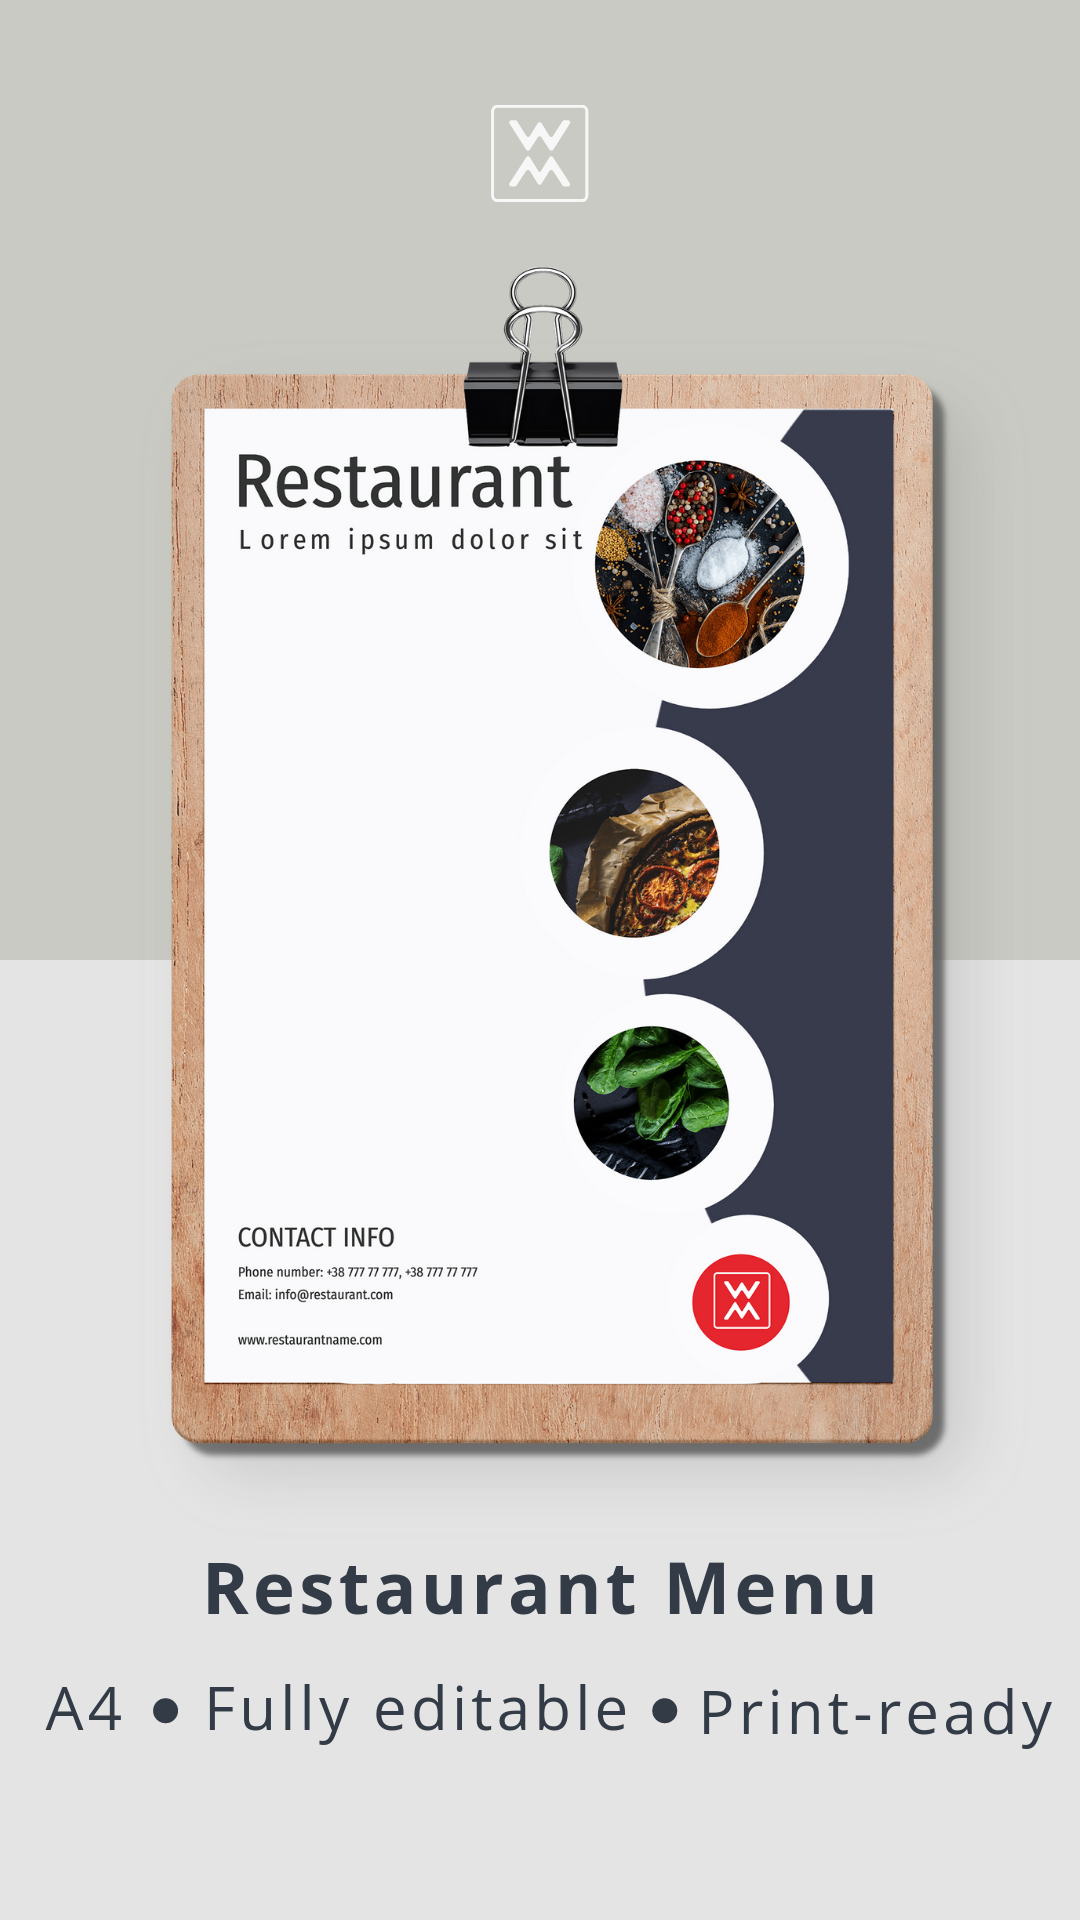 Menu Template Menu Card Design Restaurant Menu Design Menu Design